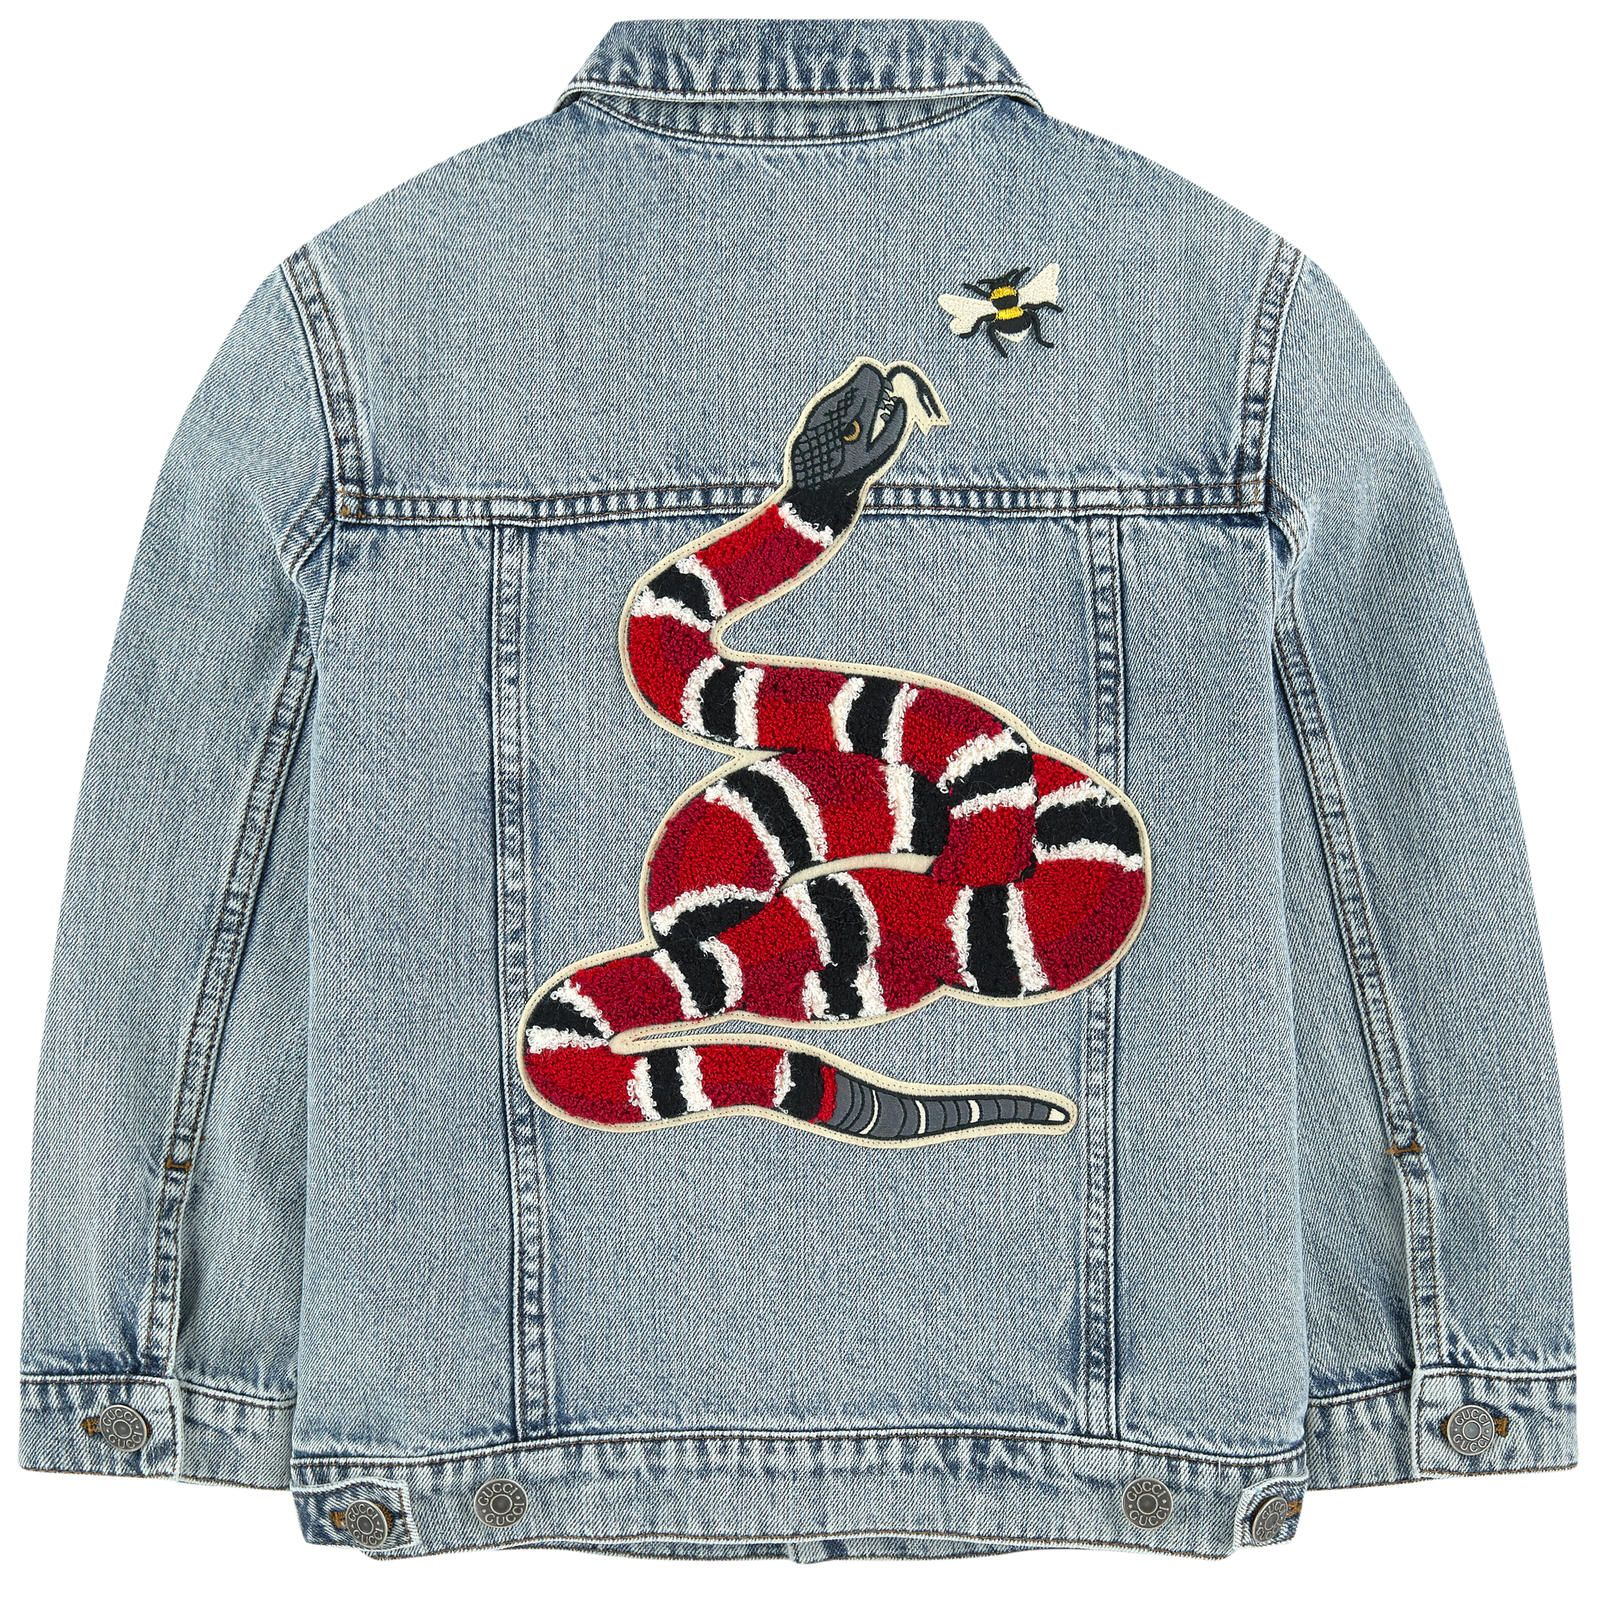 Gucci Jean Jacket With Fancy Patches Gucci Jacket Jackets Gucci Jean Jacket [ 1600 x 1600 Pixel ]